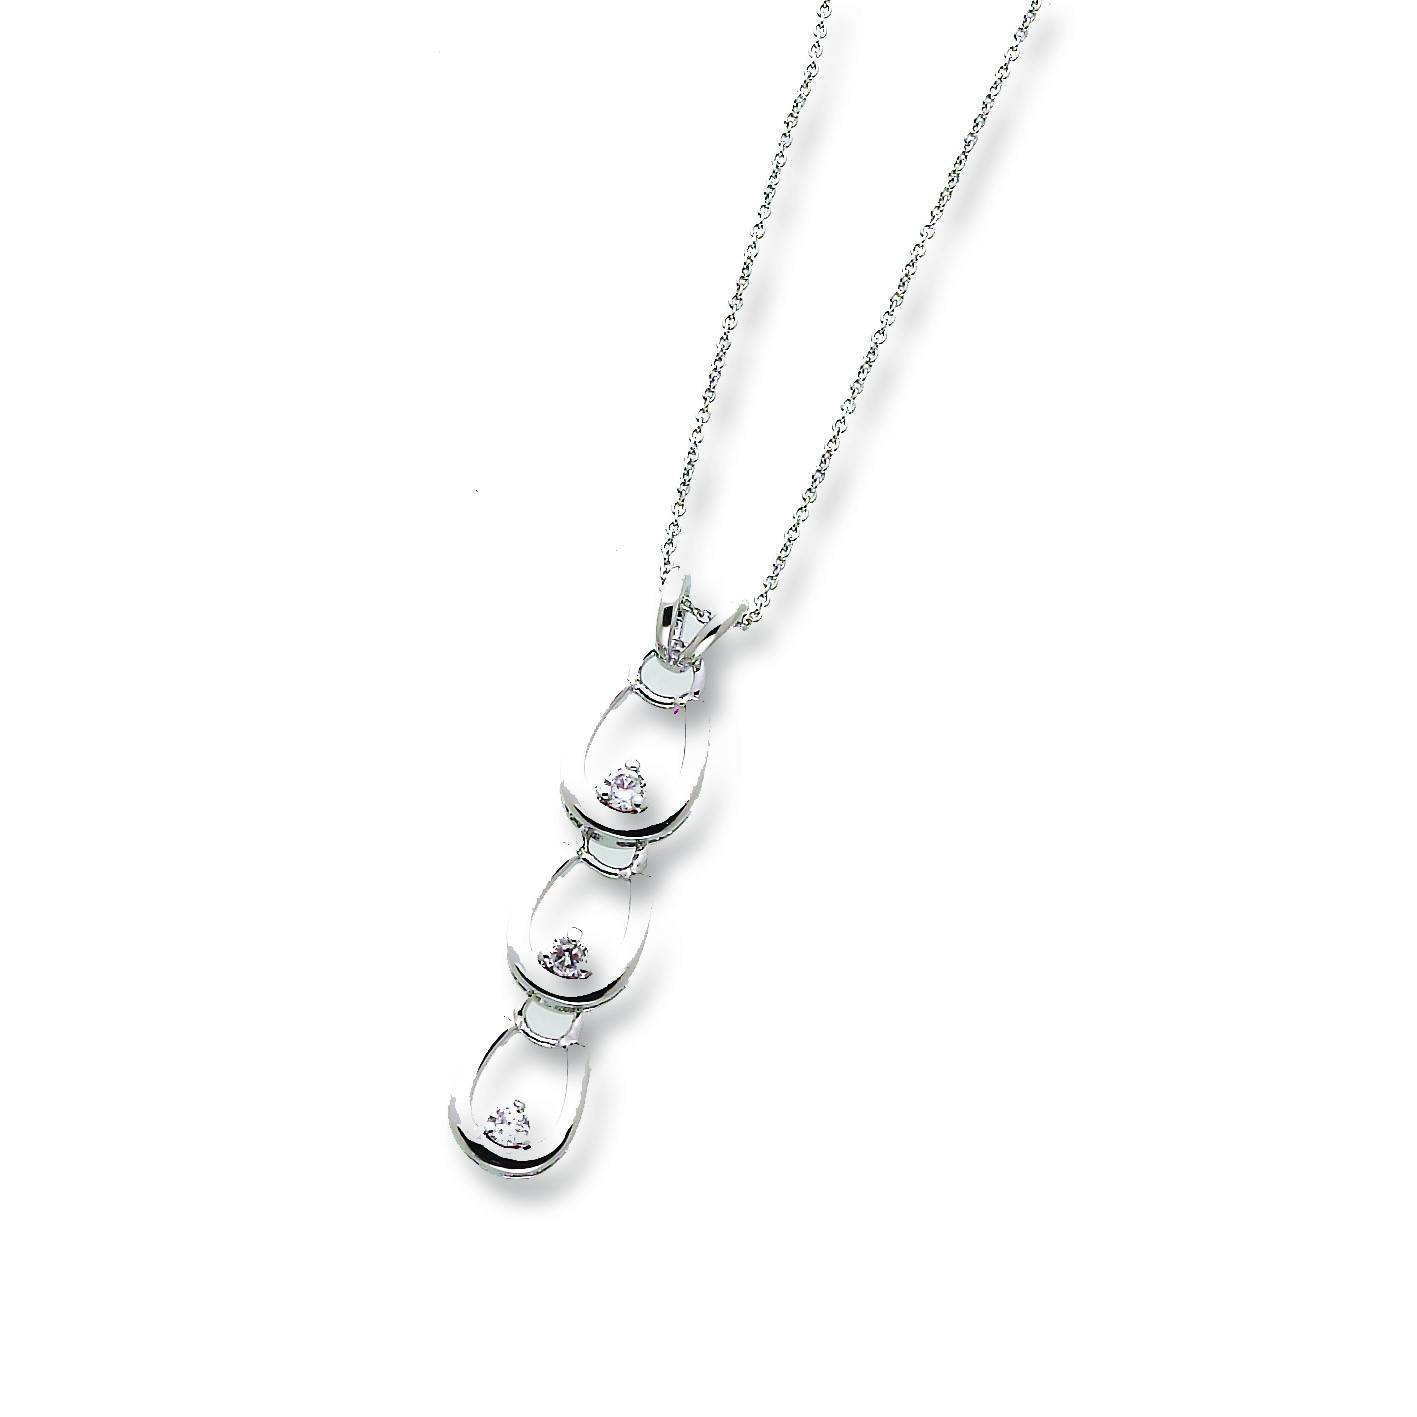 Kelley 3 Horseshoes Necklace with Clear Stones